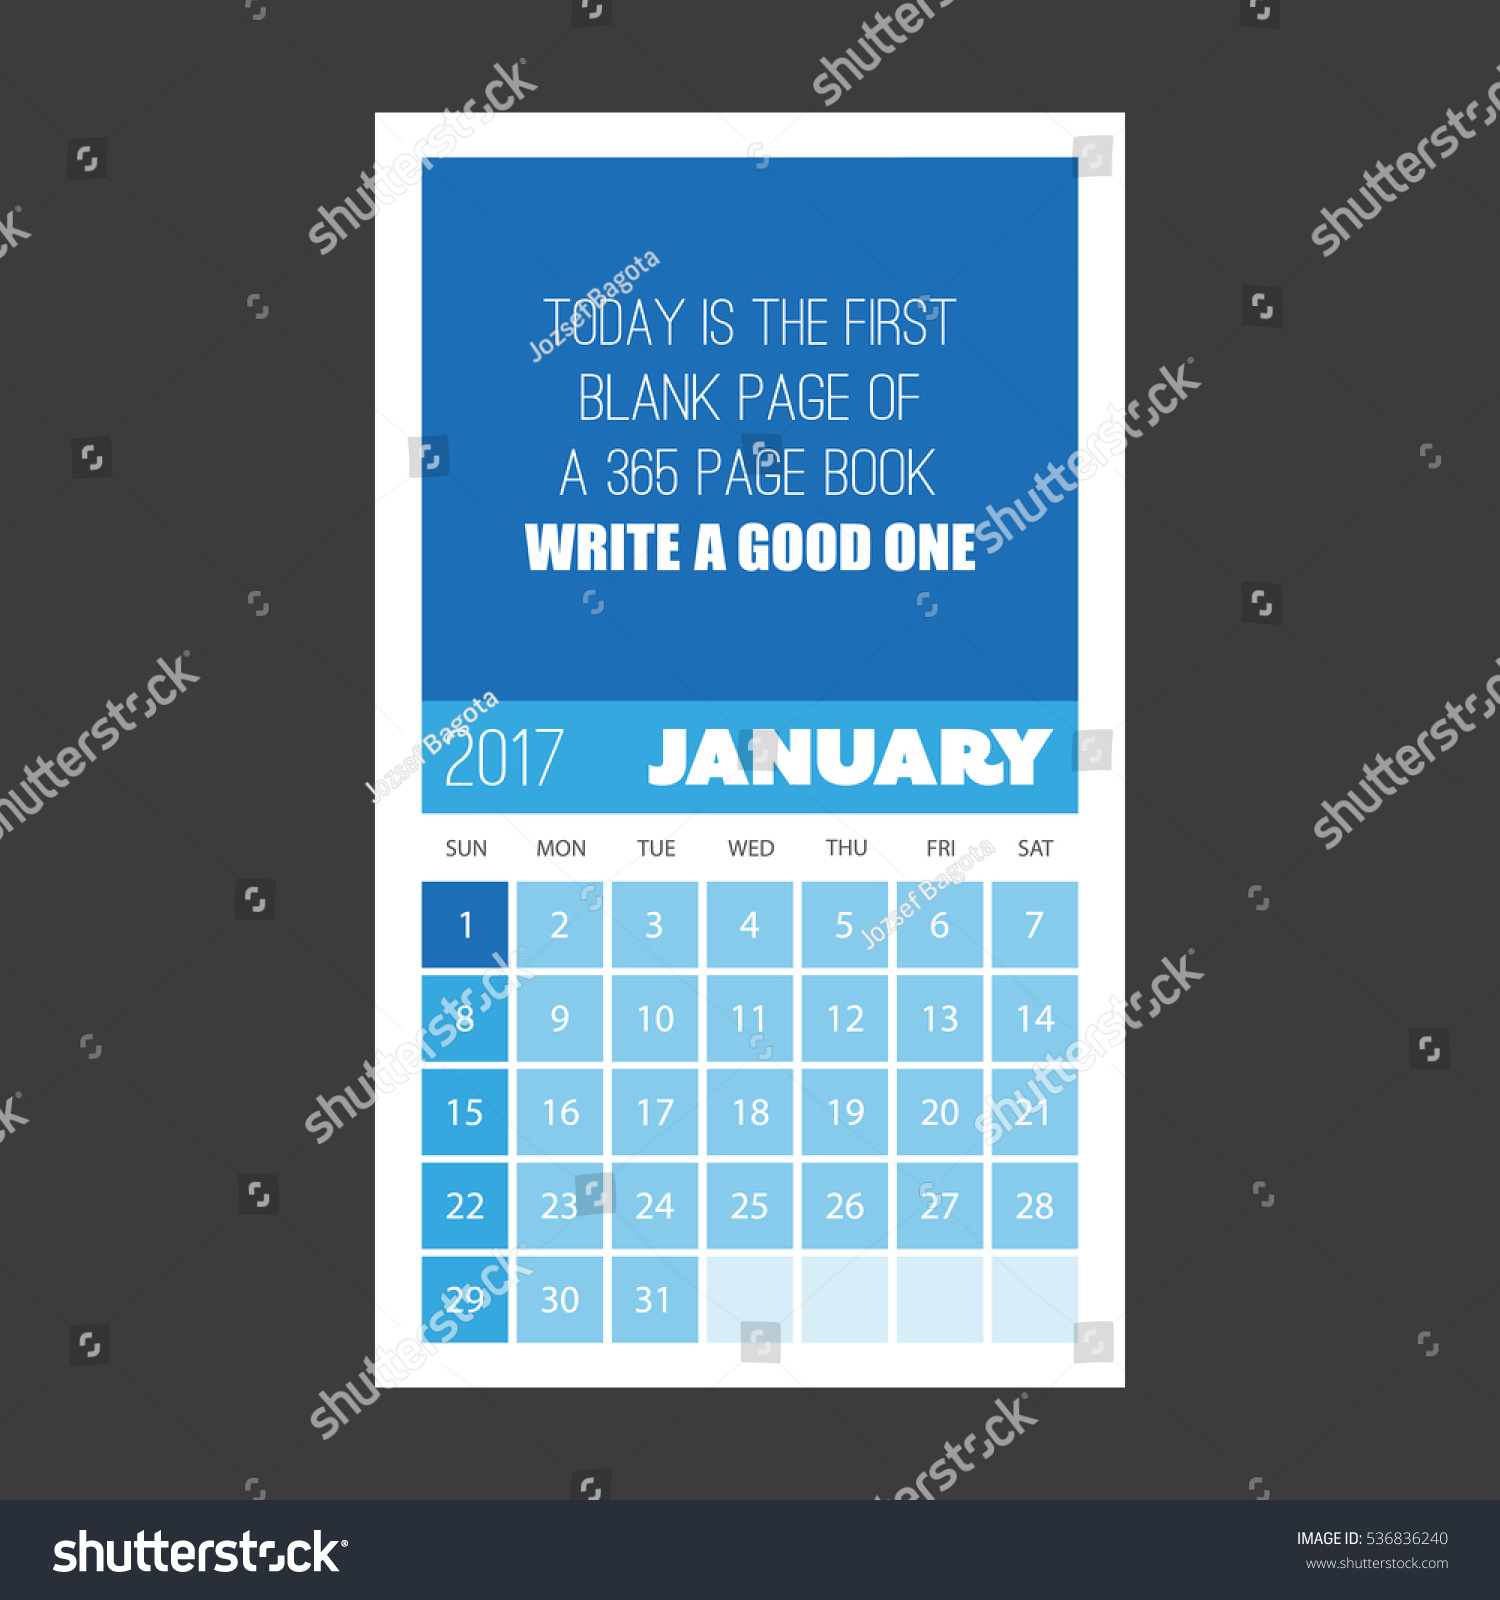 today first blank page 365 page stock vector 536836240 shutterstock